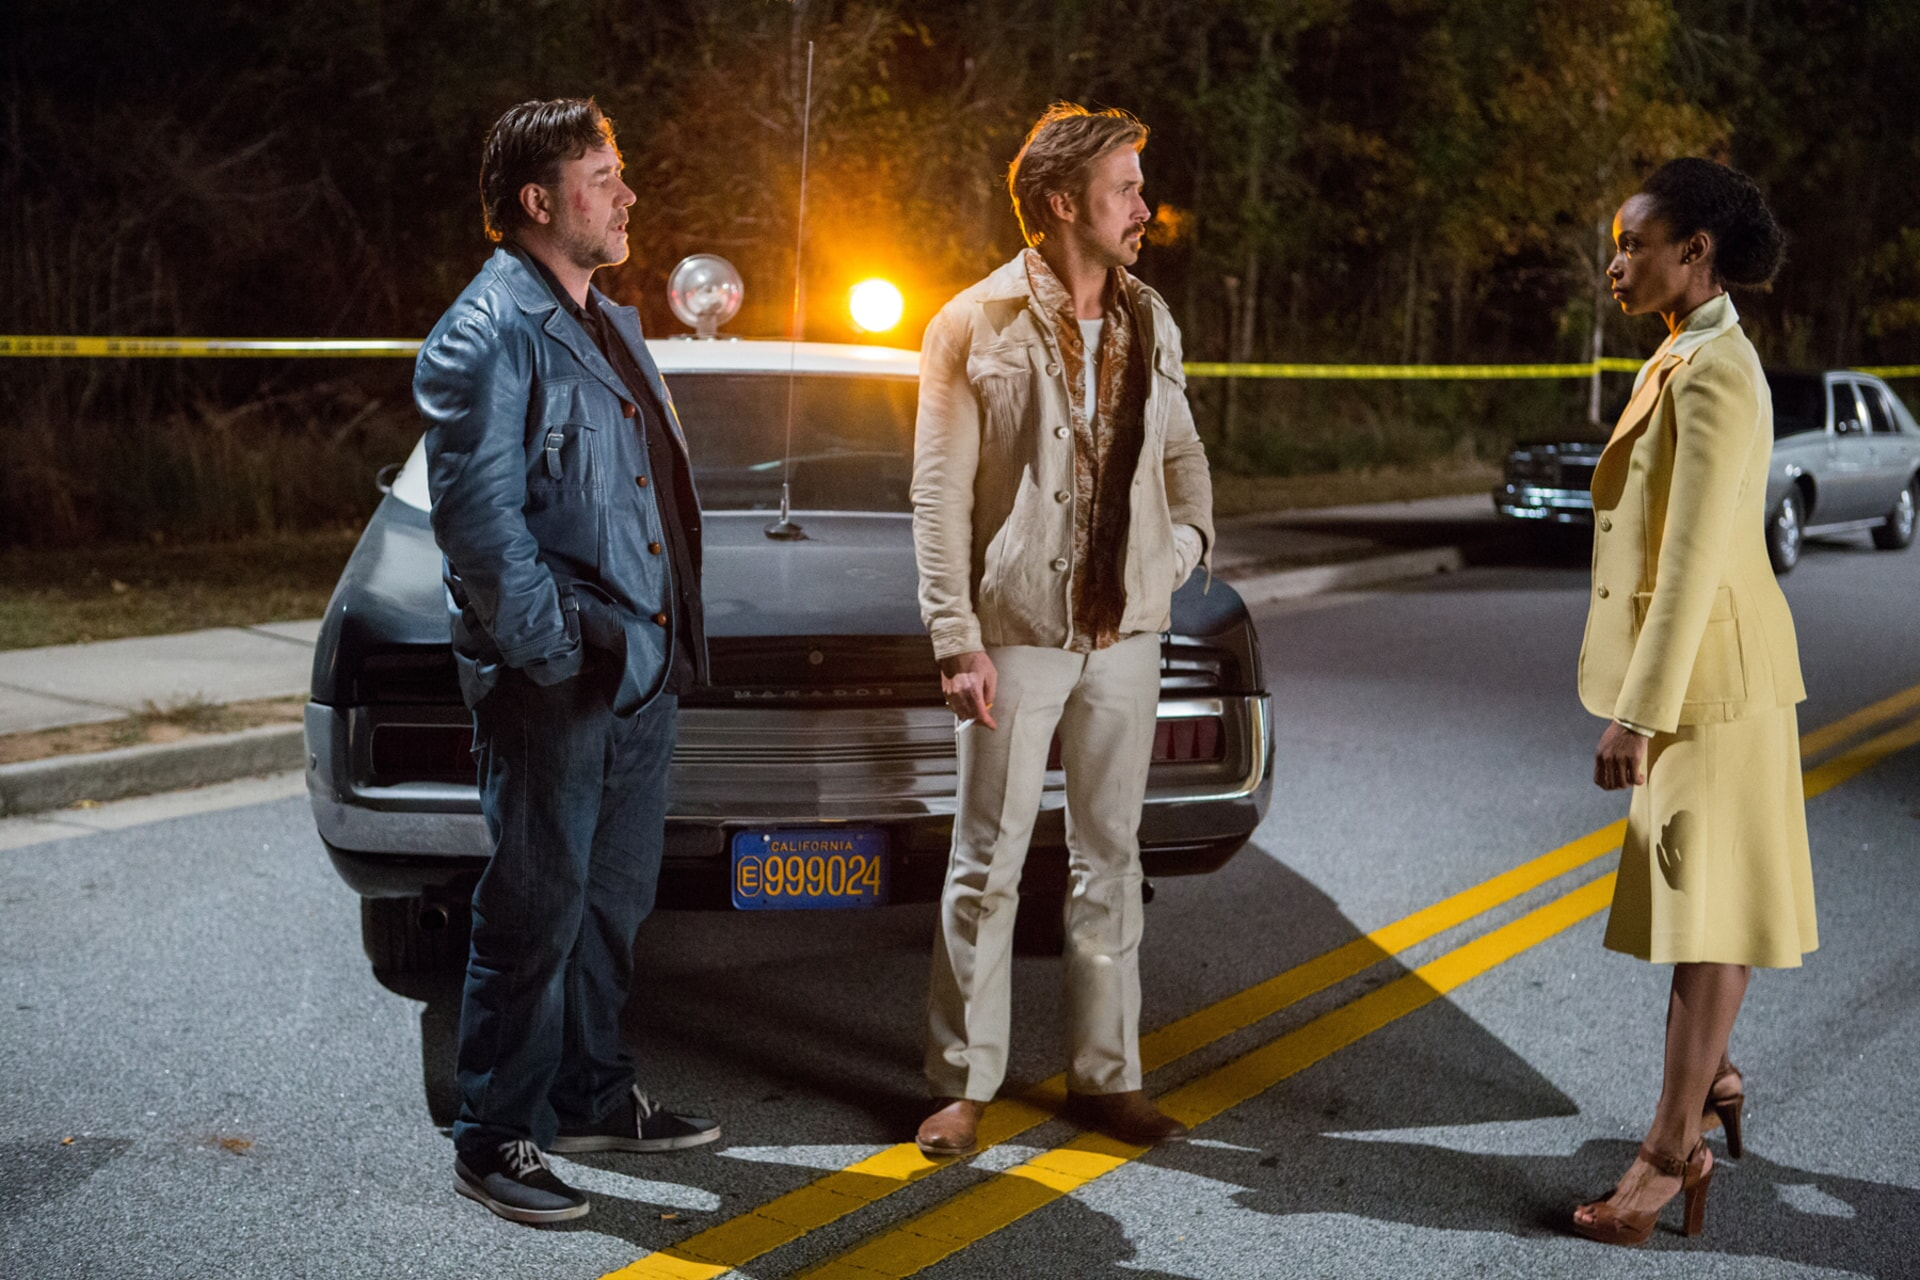 RUSSELL CROWE as Jackson Healy and RYAN GOSLING as Holland March in leisure suits standing next to a brown convertible at night